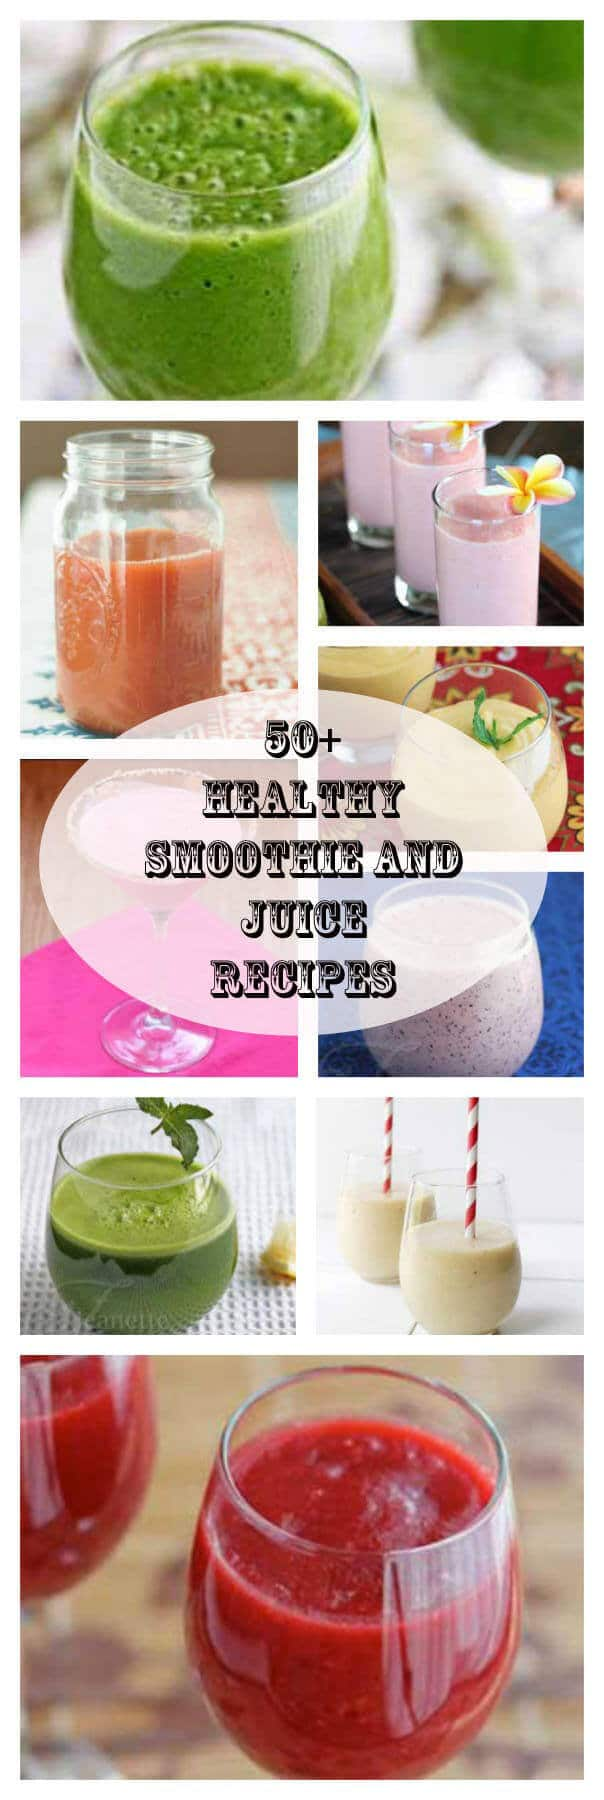 50 healthy smoothie and juice recipes for cleansing detox